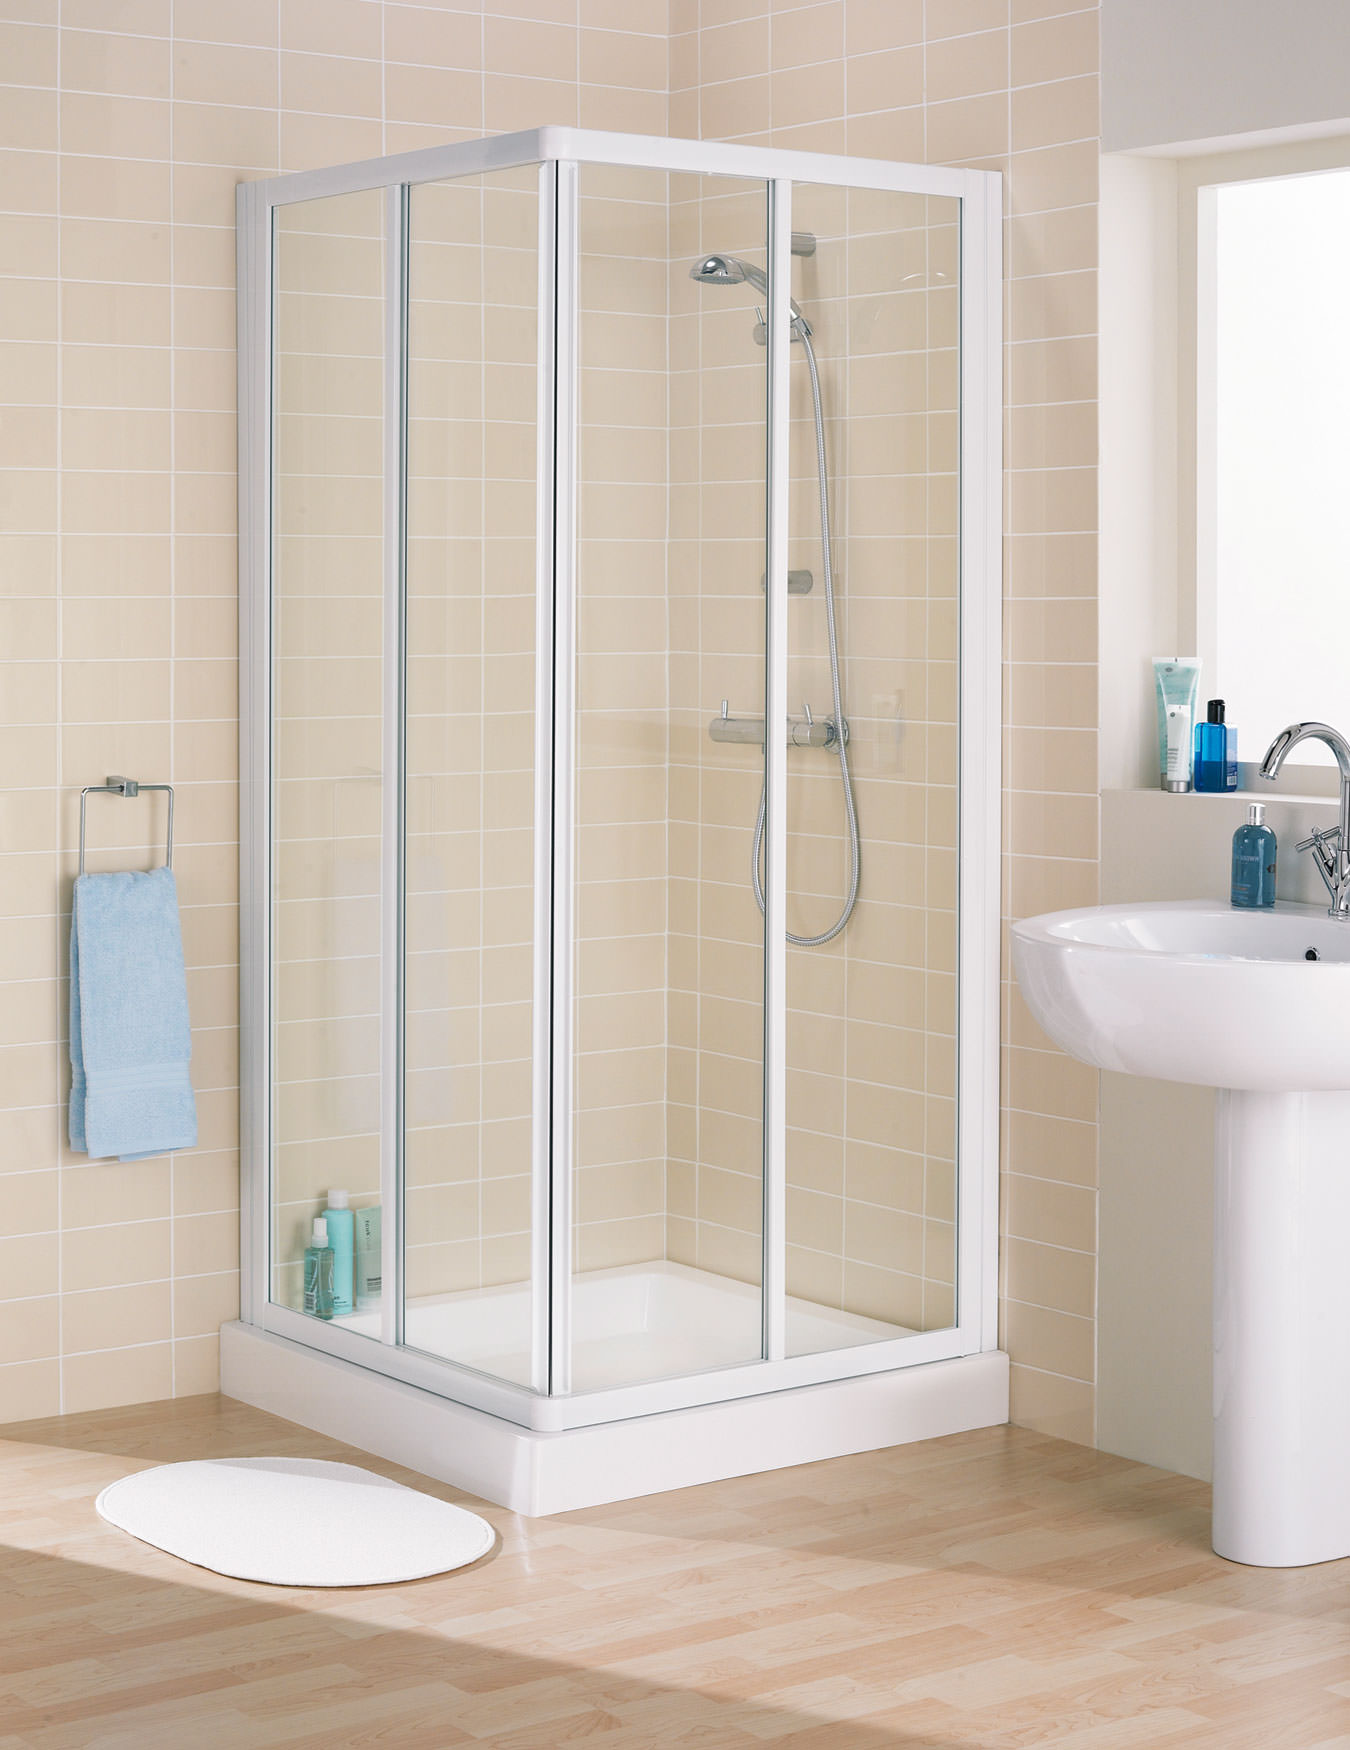 Lakes Classic Framed Corner Entry Shower Enclosure 750mm White